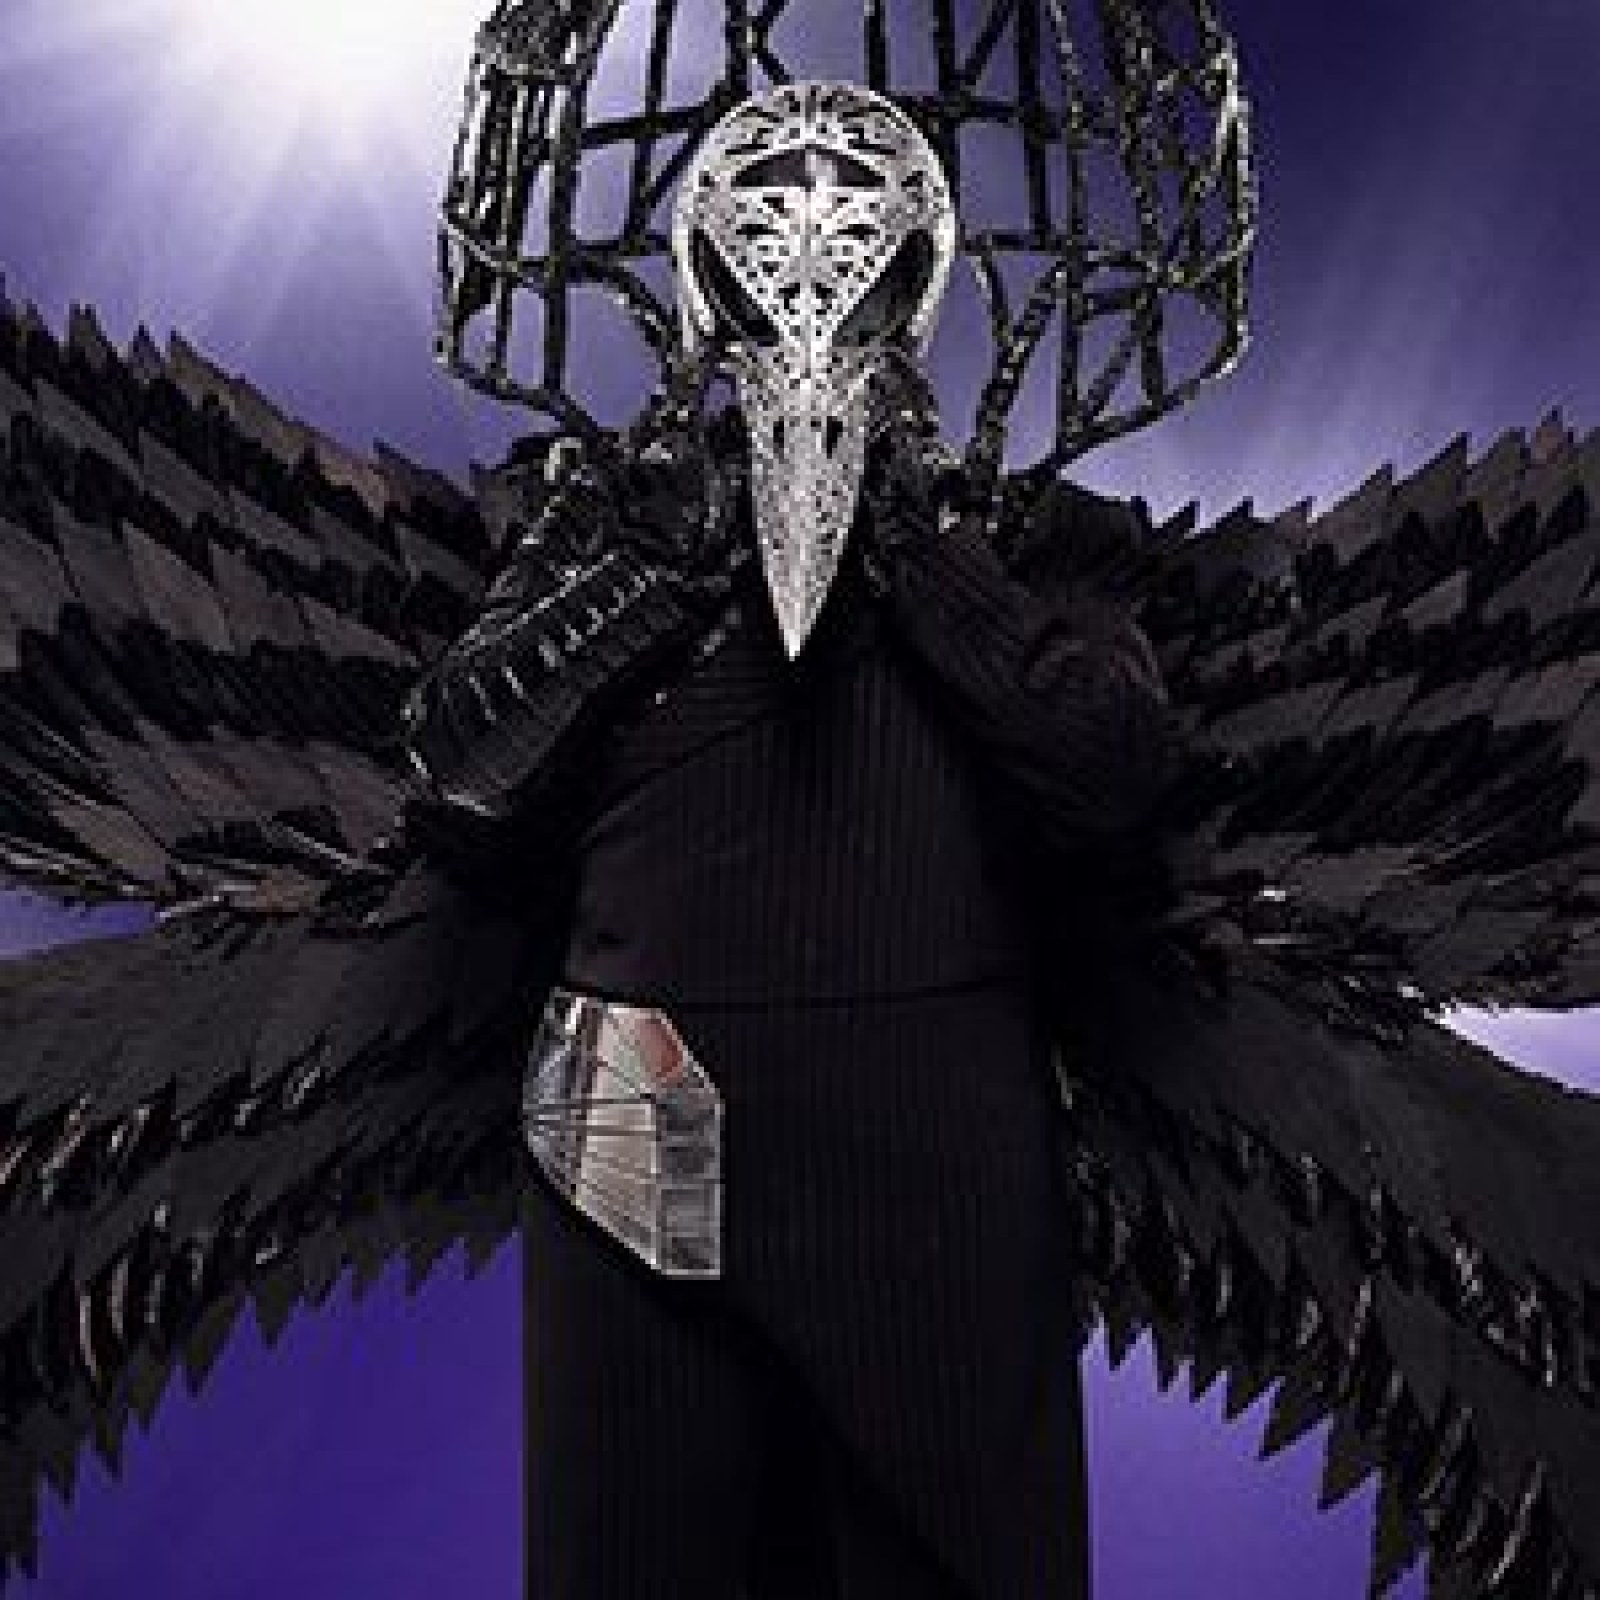 The Masked Singer' Episode 2 Spoilers & Recap: Clues for The